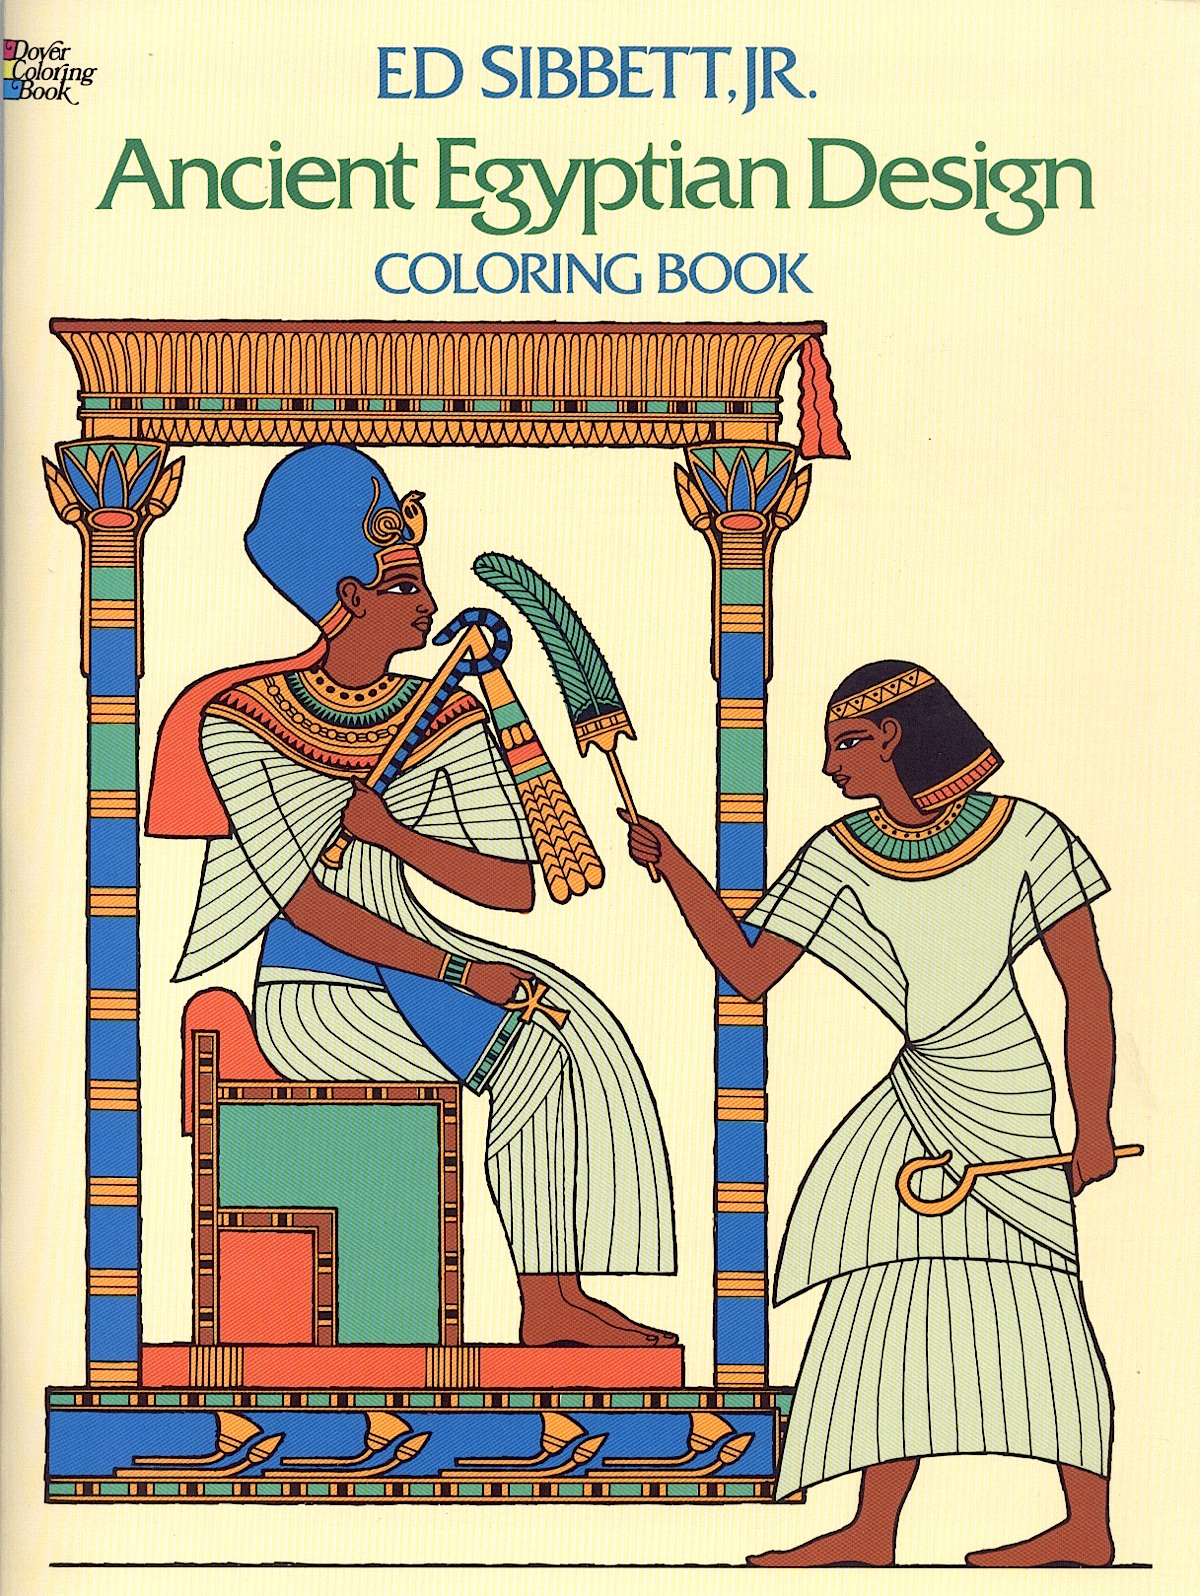 Ancient Egypt Designs-Coloring Book